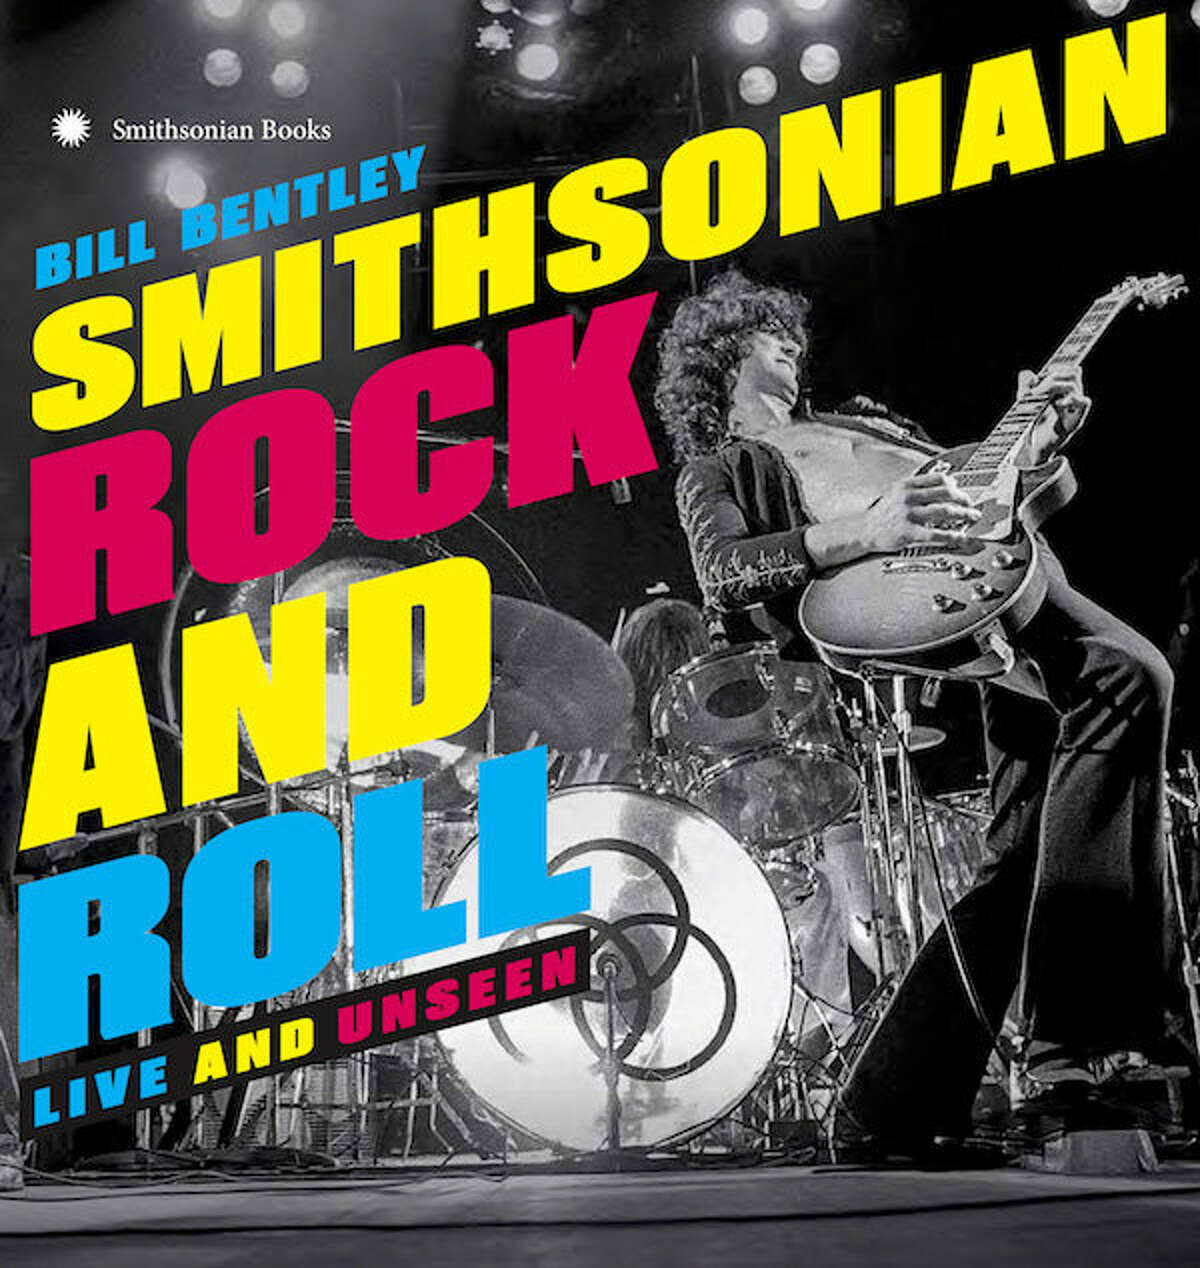 """Cover image for """"SmithsonianRock and Roll: Live and Unseen,"""" which collects live photographs from more than 50 years of rock concerts with text by Houston native Bill Bentley"""